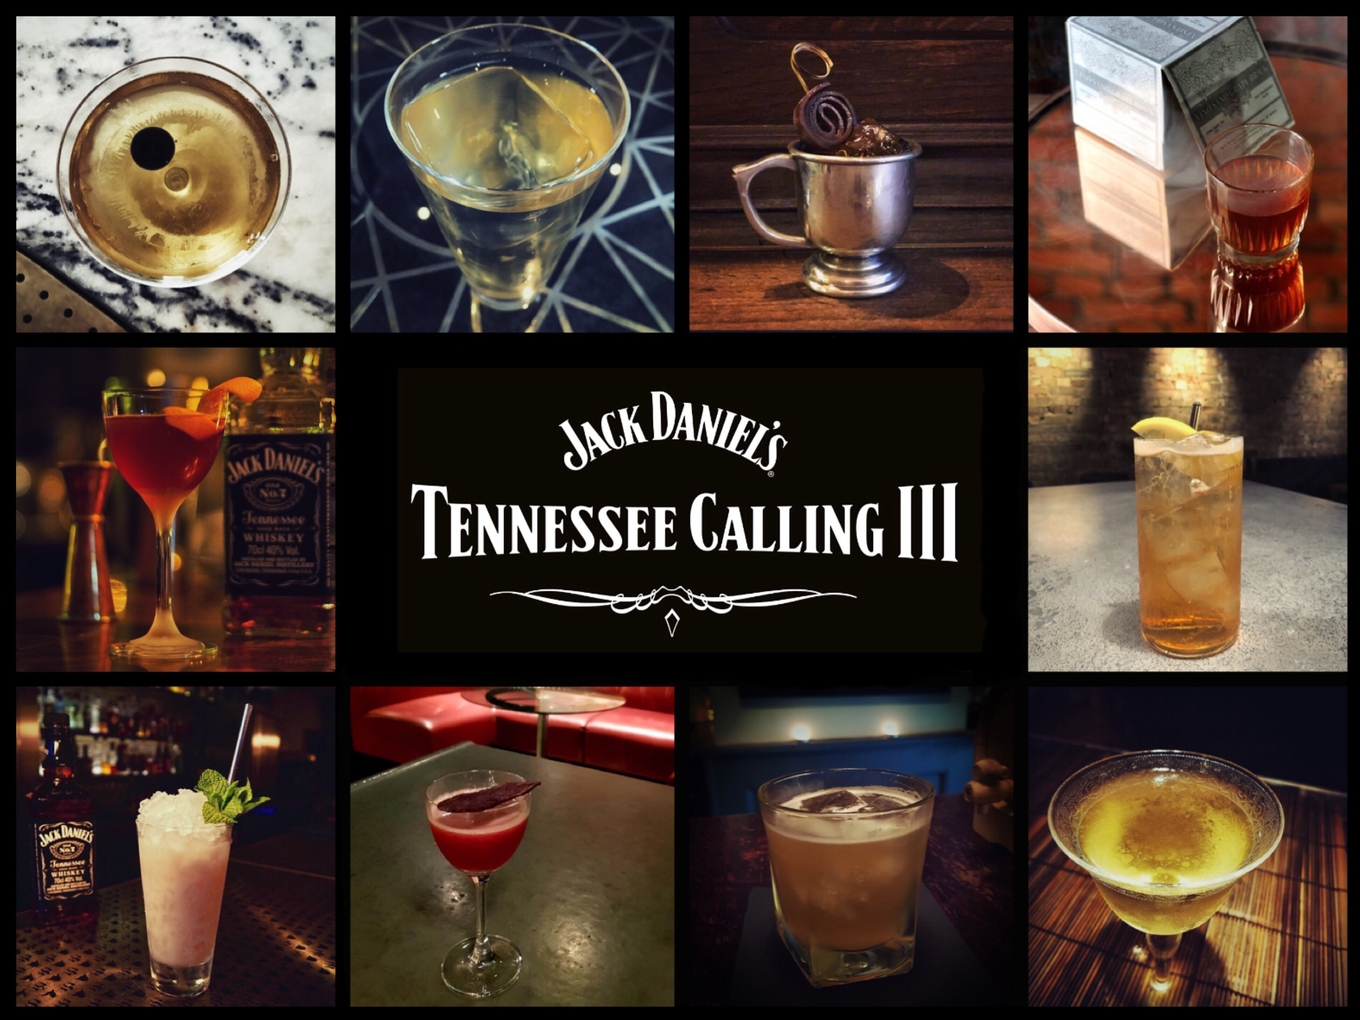 Tennessee Calling 2018 image 1